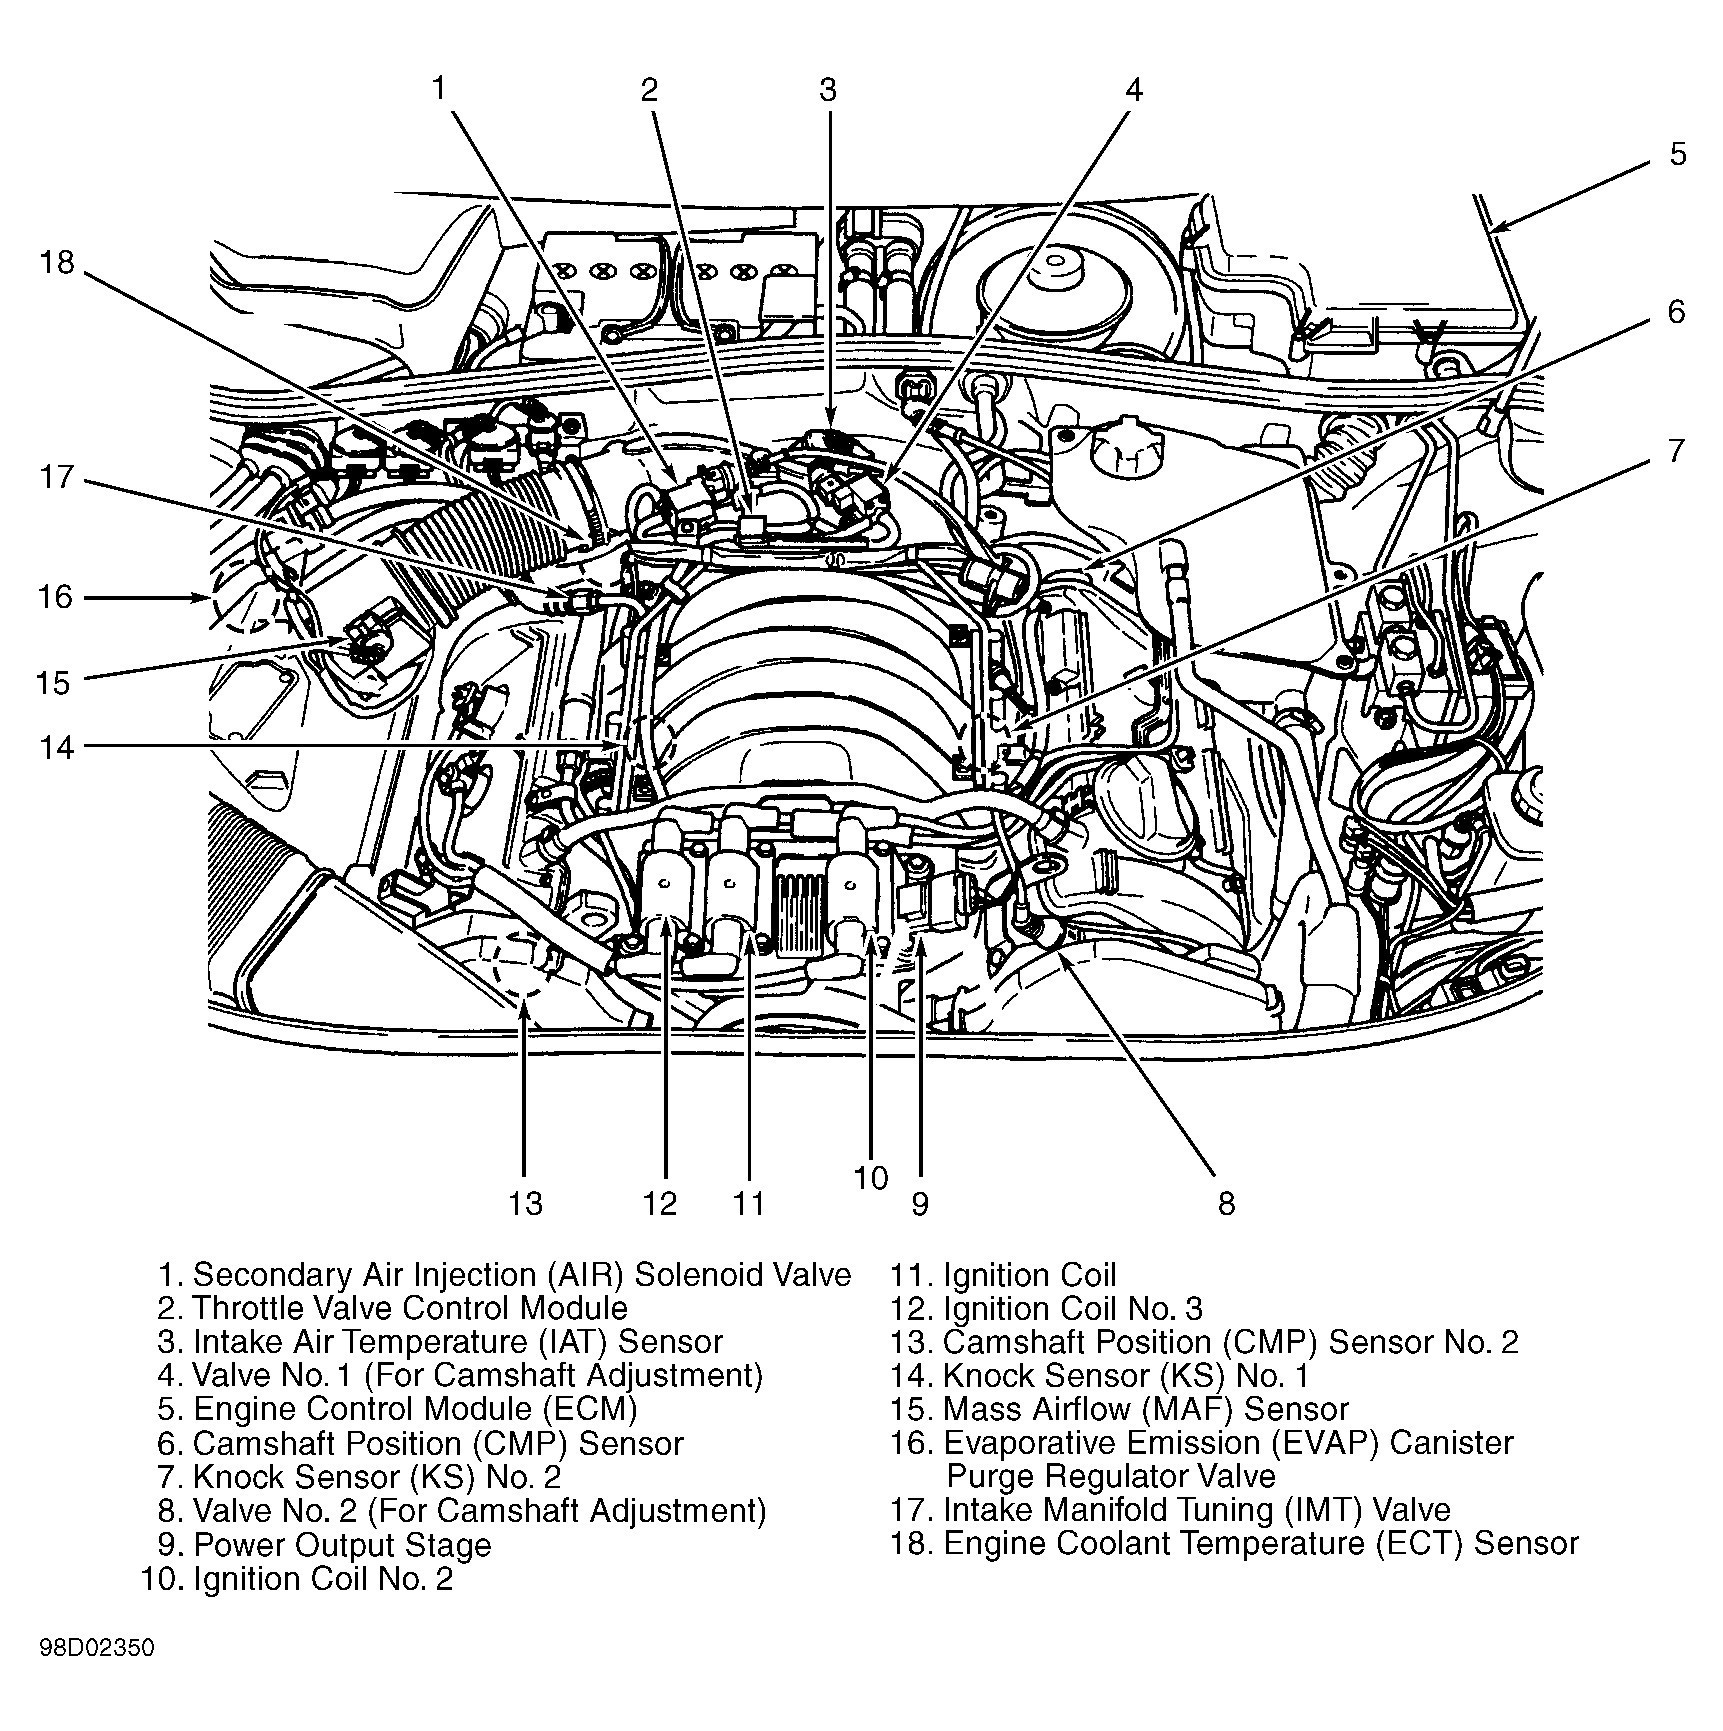 [SCHEMATICS_4FR]  2007 Chrysler 300 Hemi 57 Engine Diagram | Wiring Diagram | 2008 5 7l Hemi Engine Diagram |  | Wiring Diagram - Autoscout24